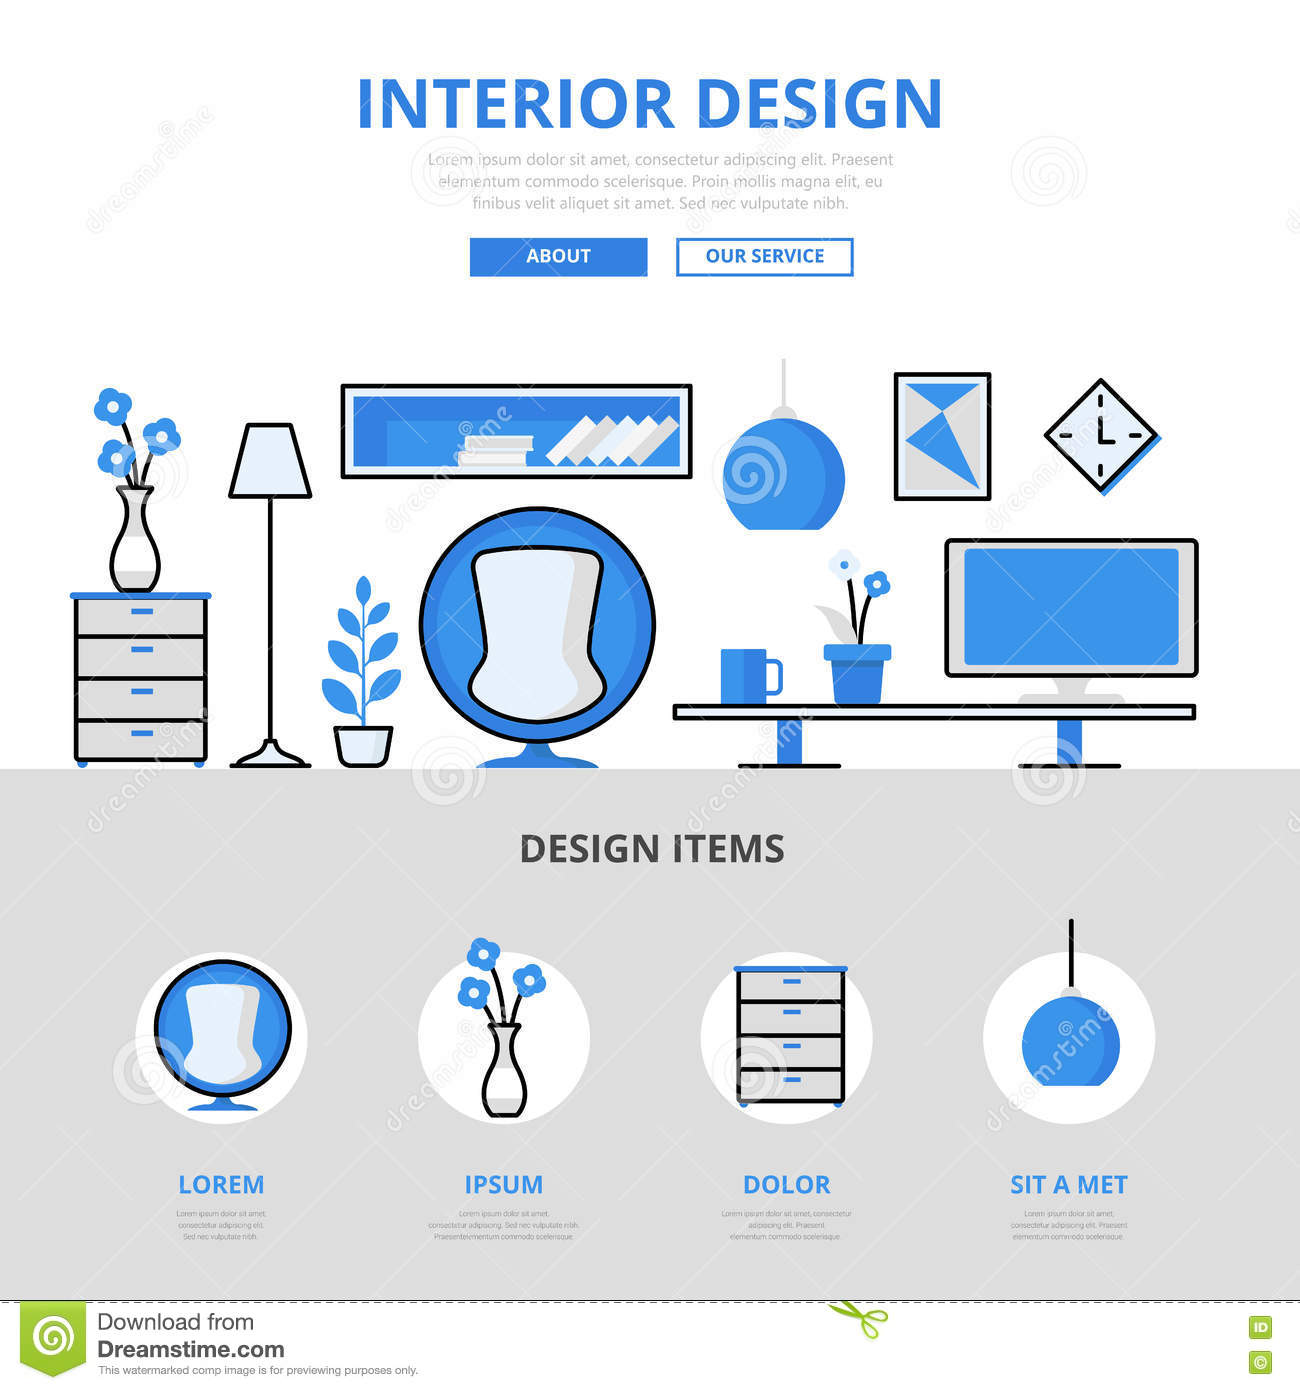 92 interior design icons free download design for Interior design photos free download